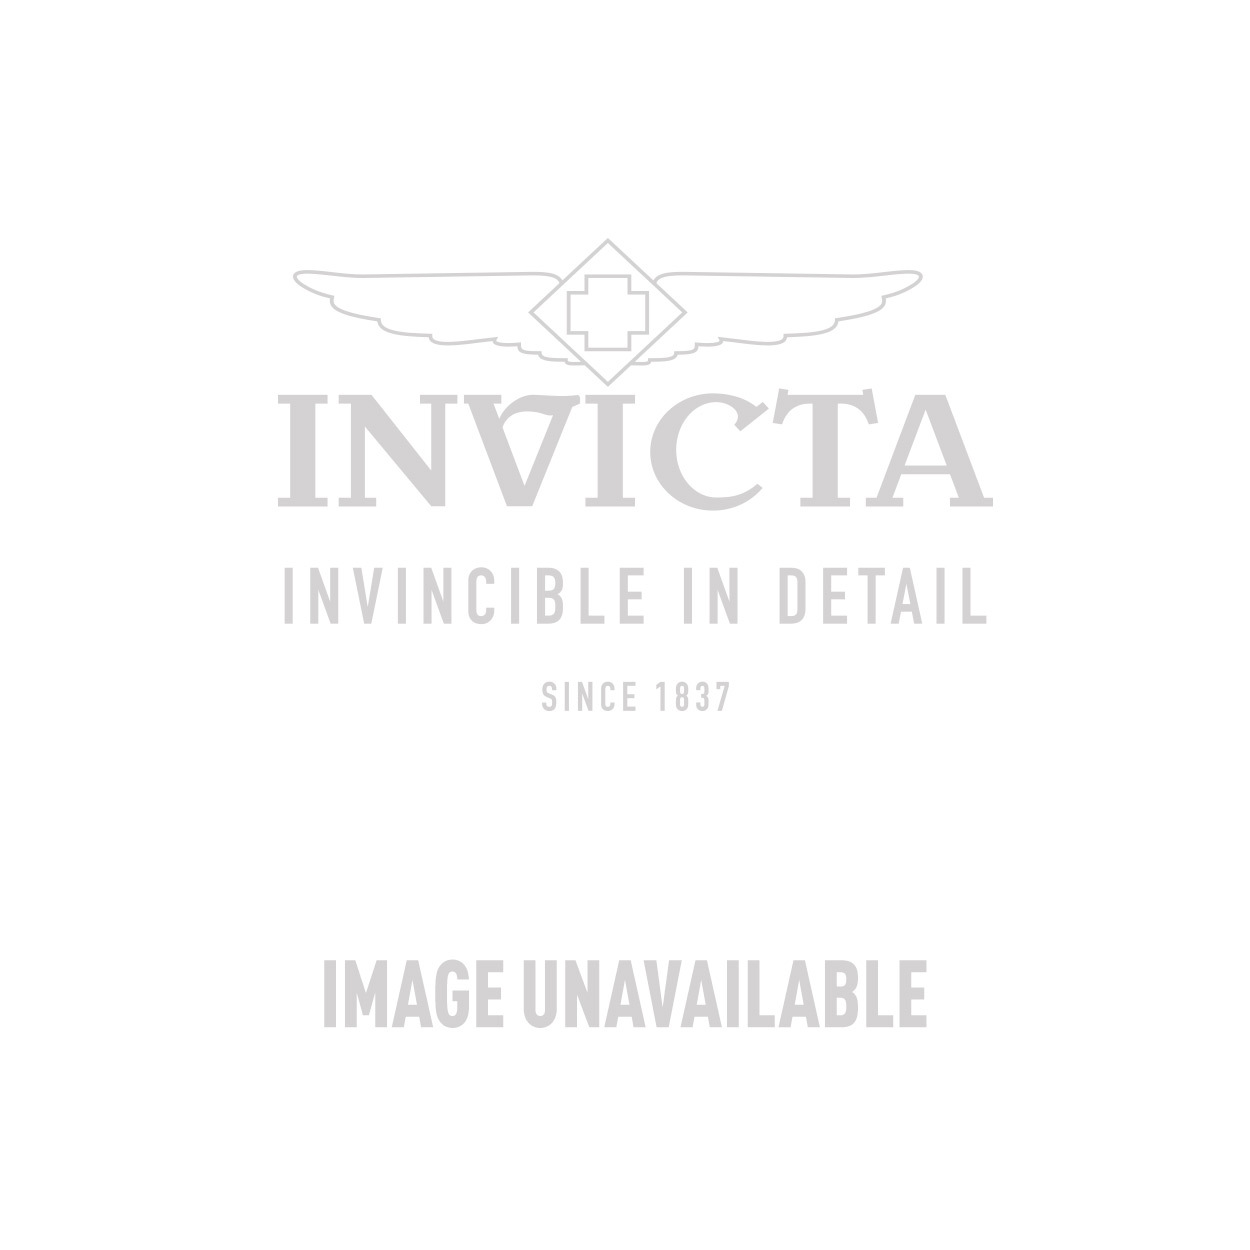 Invicta I-Force Quartz Watch - Stainless Steel case with Dark Brown tone Leather band - Model 13054